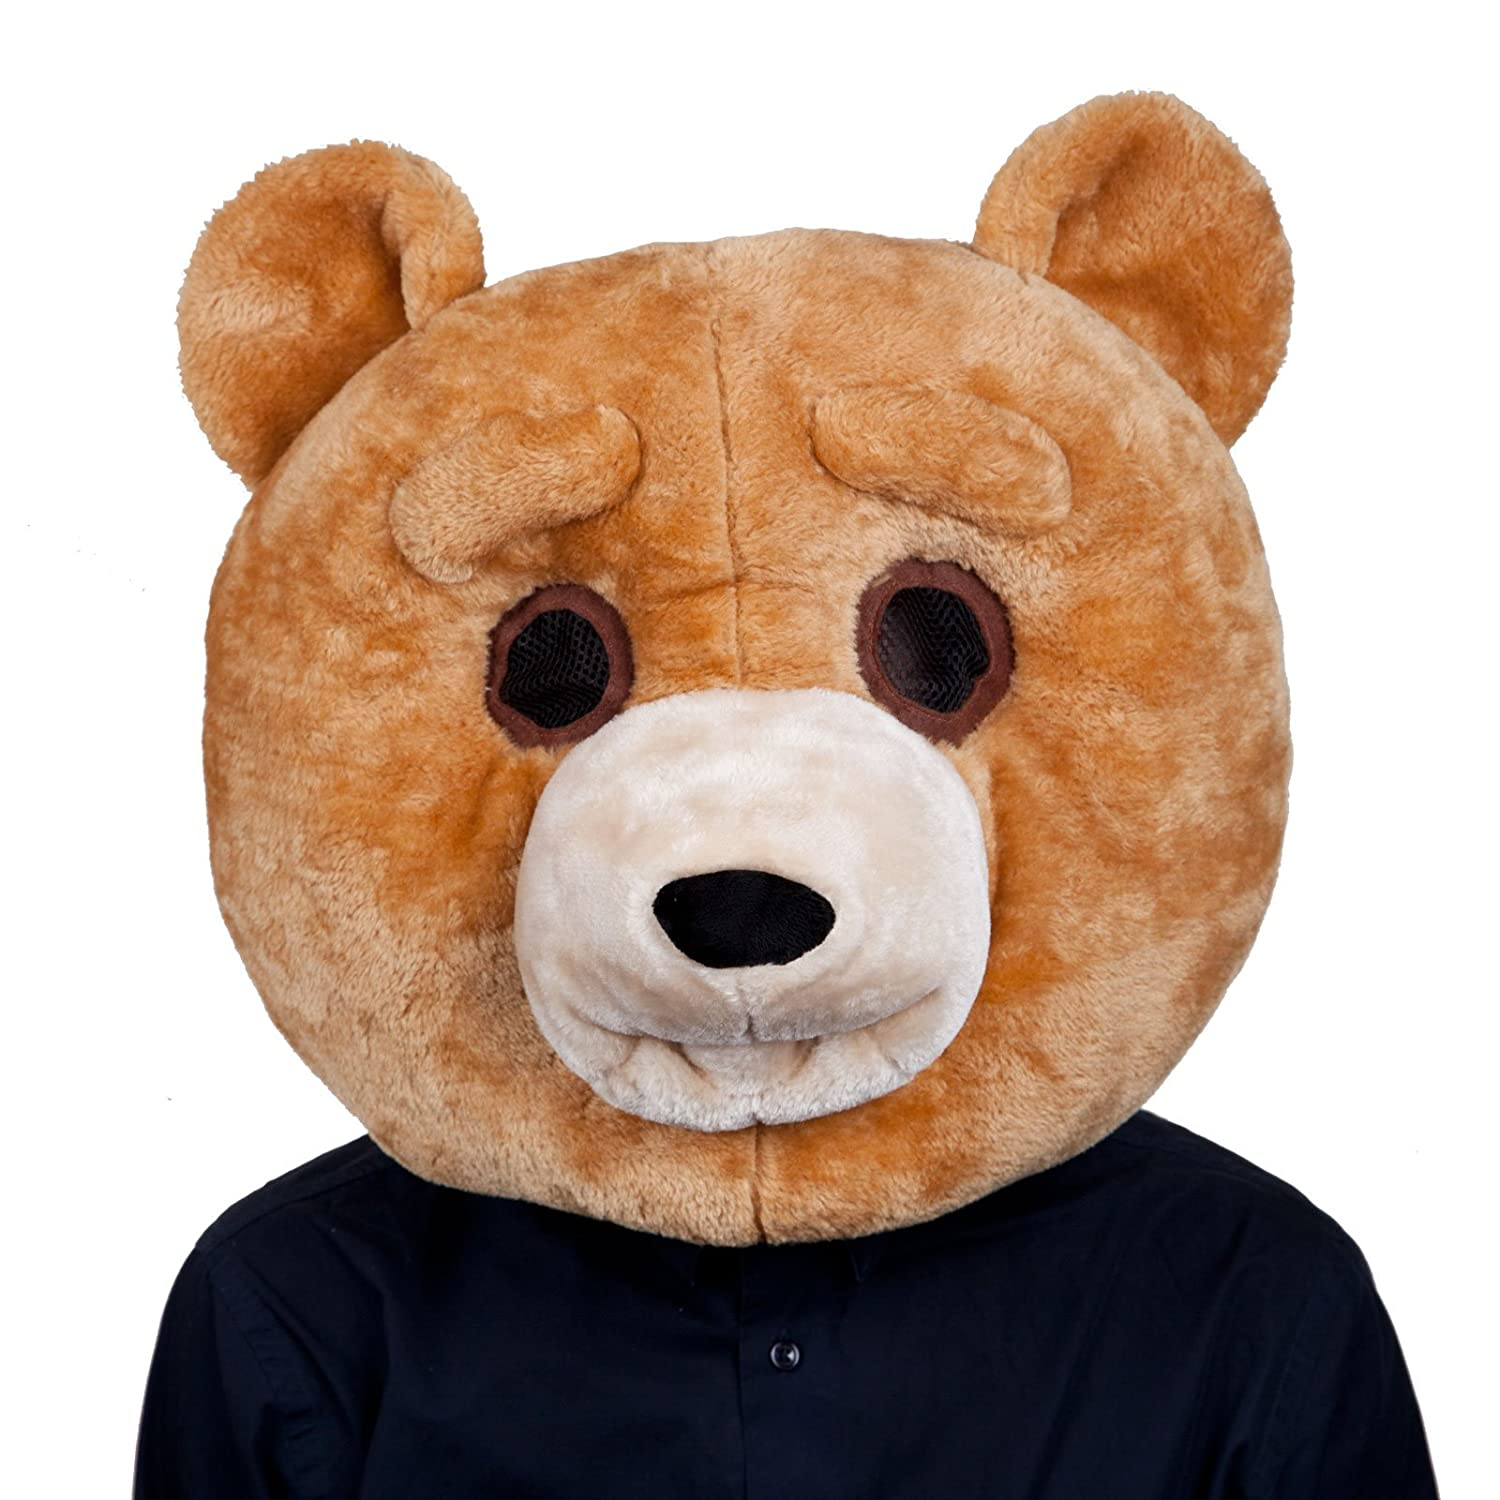 Adults Plush Teddy Bear Head Mask Halloween Fancy Dress Party Costume Accessory  sc 1 st  Amazon UK & Giant Deluxe Teddy Bear Mascot - Adult Costume Adult - One Size ...